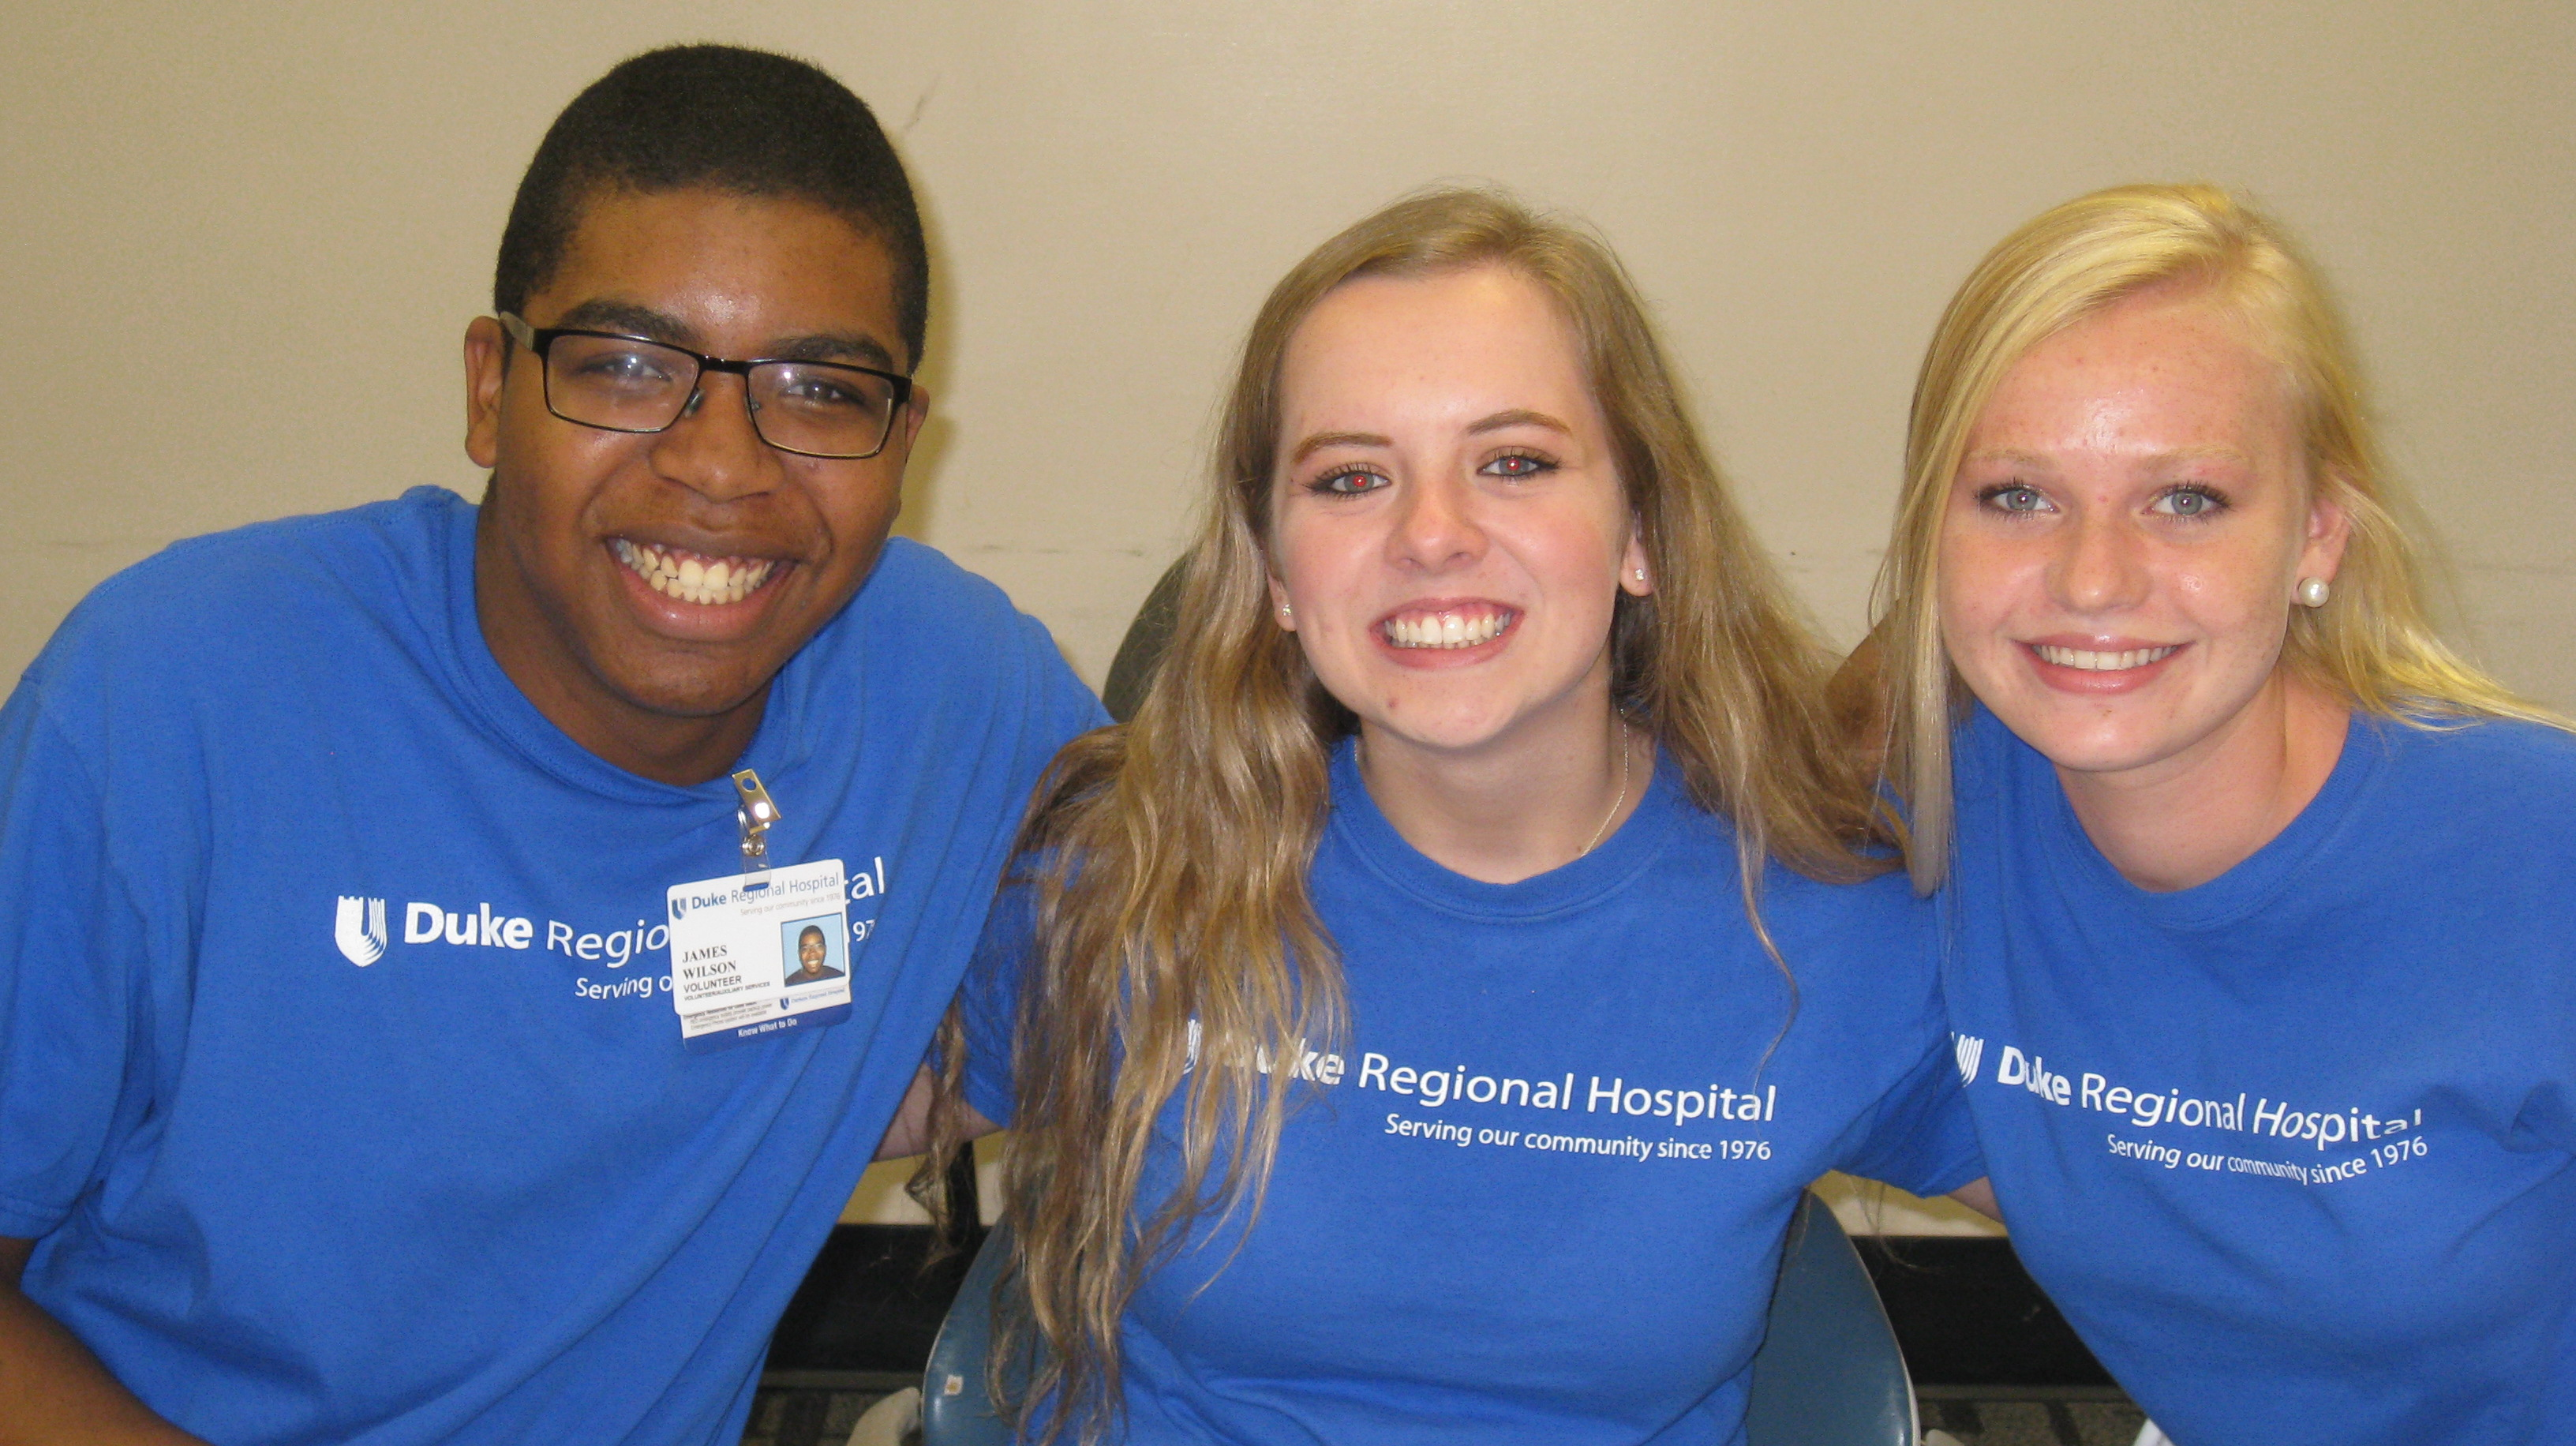 volunteer opportunities duke regional hospital each summer duke regional s junior volunteer program offers teens 15 18 years of age the chance to make a difference in their community